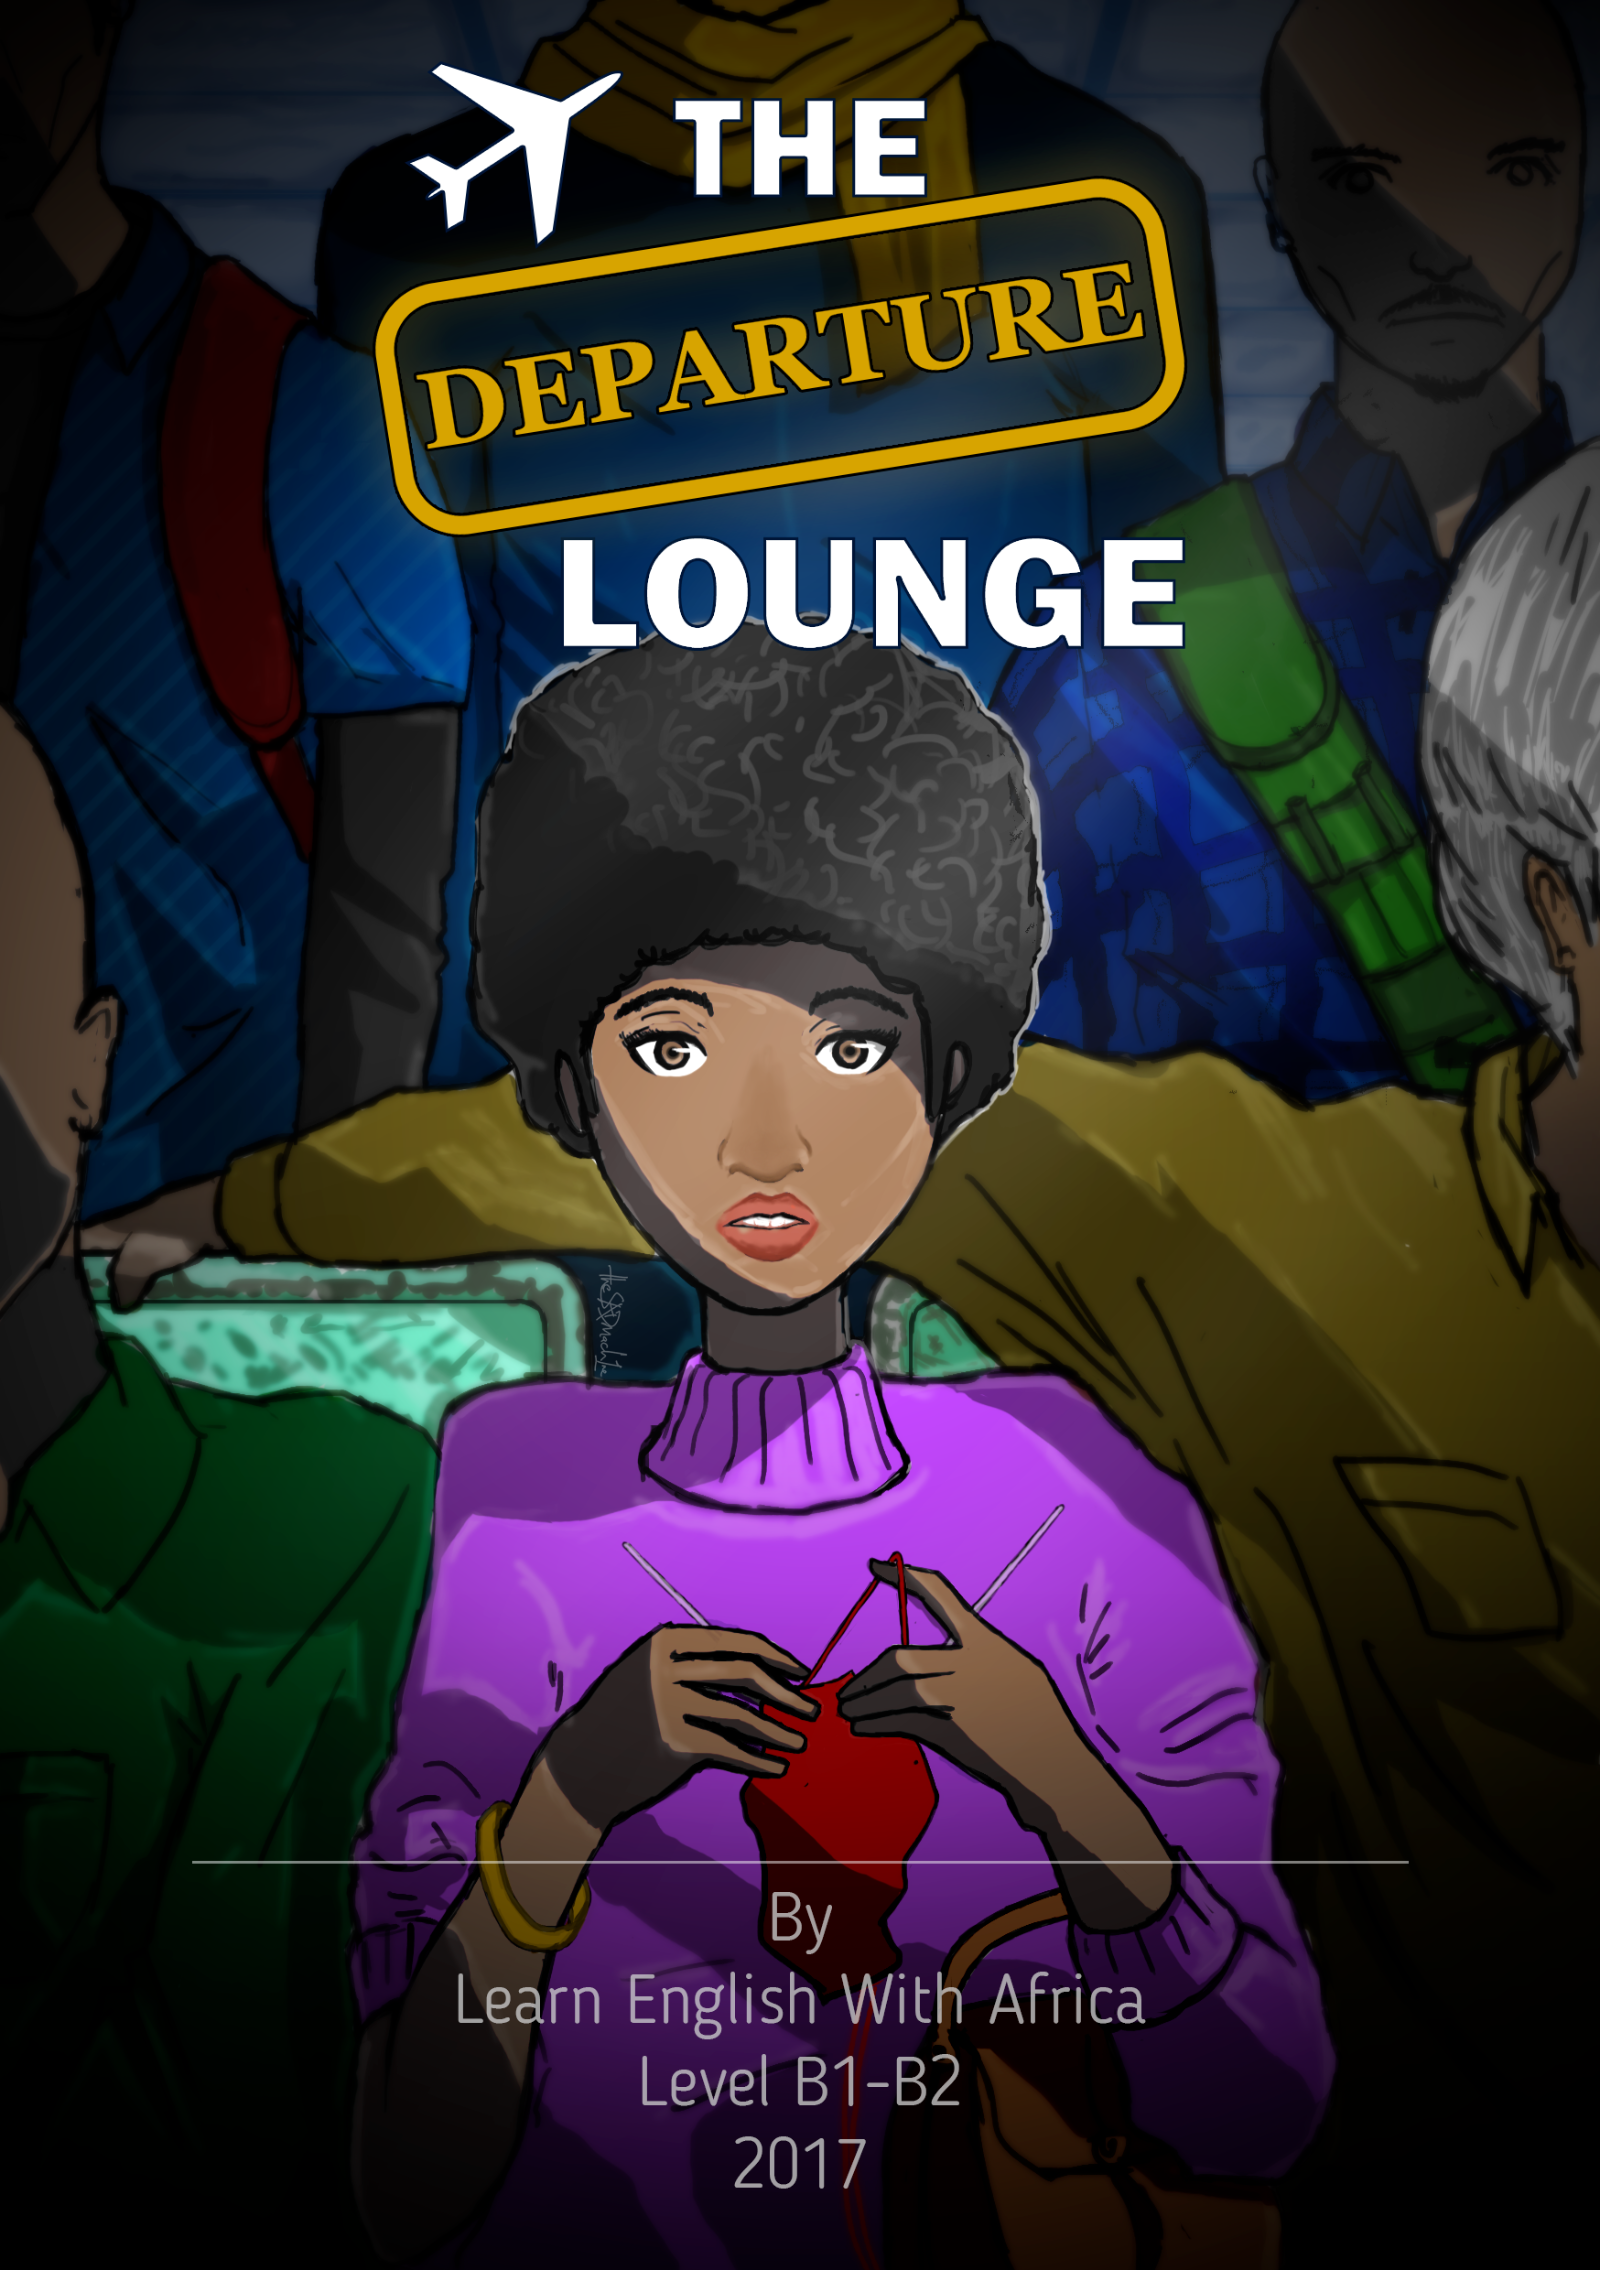 The Departure Lounge, Short Story, Learn English With Africa SELZ, 2017